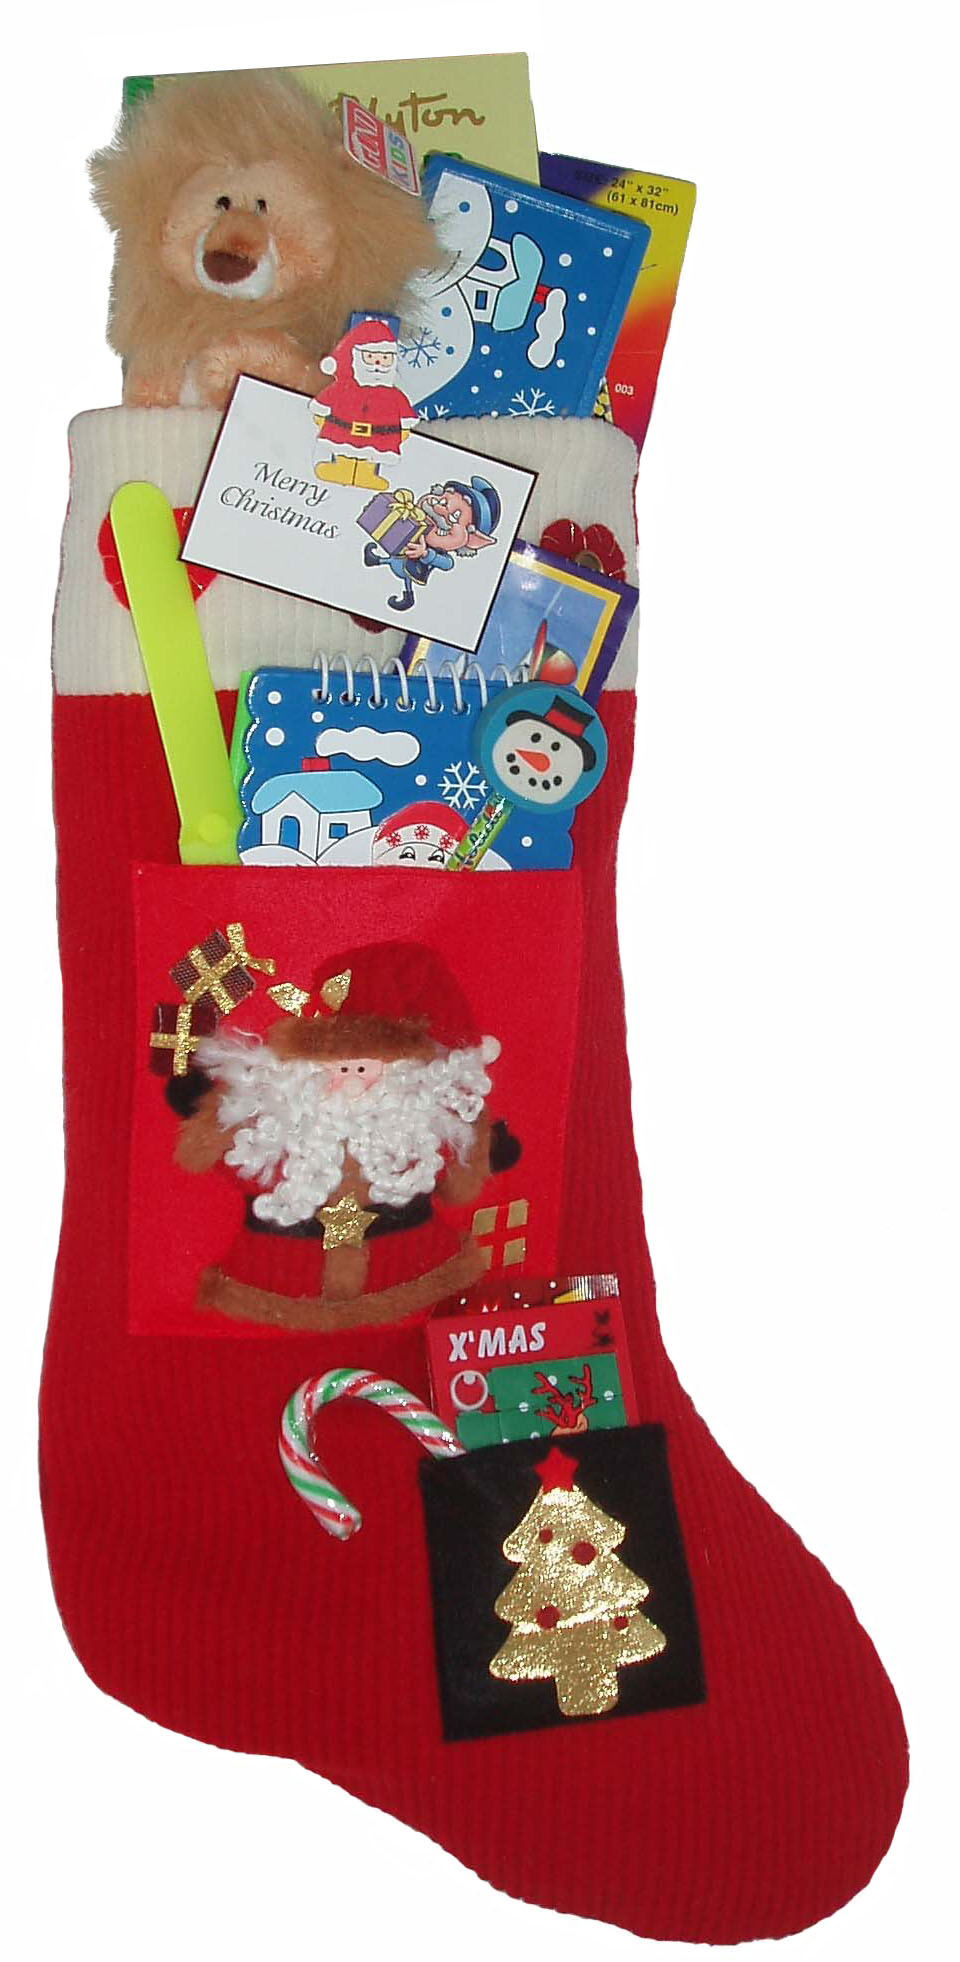 pre filled santaselvescouk childrens stockingsantaselvescouk pre filled christmas stockings for dhildren and adults of all ages - Pre Filled Christmas Stockings